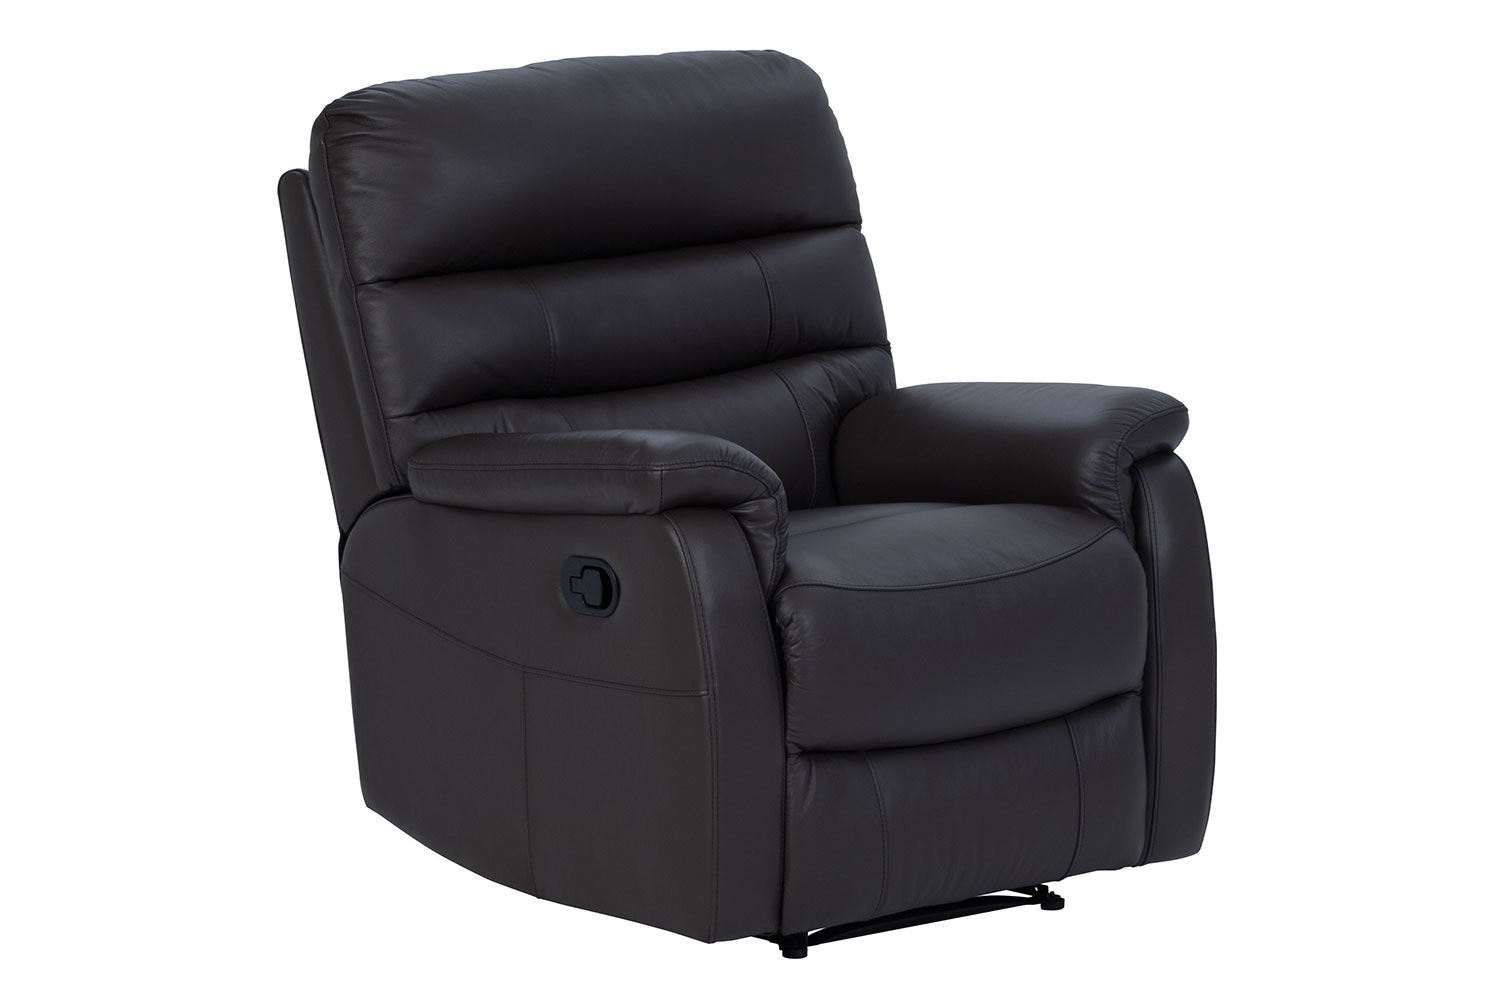 Luna Leather Recliner Chair by Vivin  sc 1 st  Harvey Norman & Luna Leather Recliner Chair by Vivin | Harvey Norman New Zealand islam-shia.org